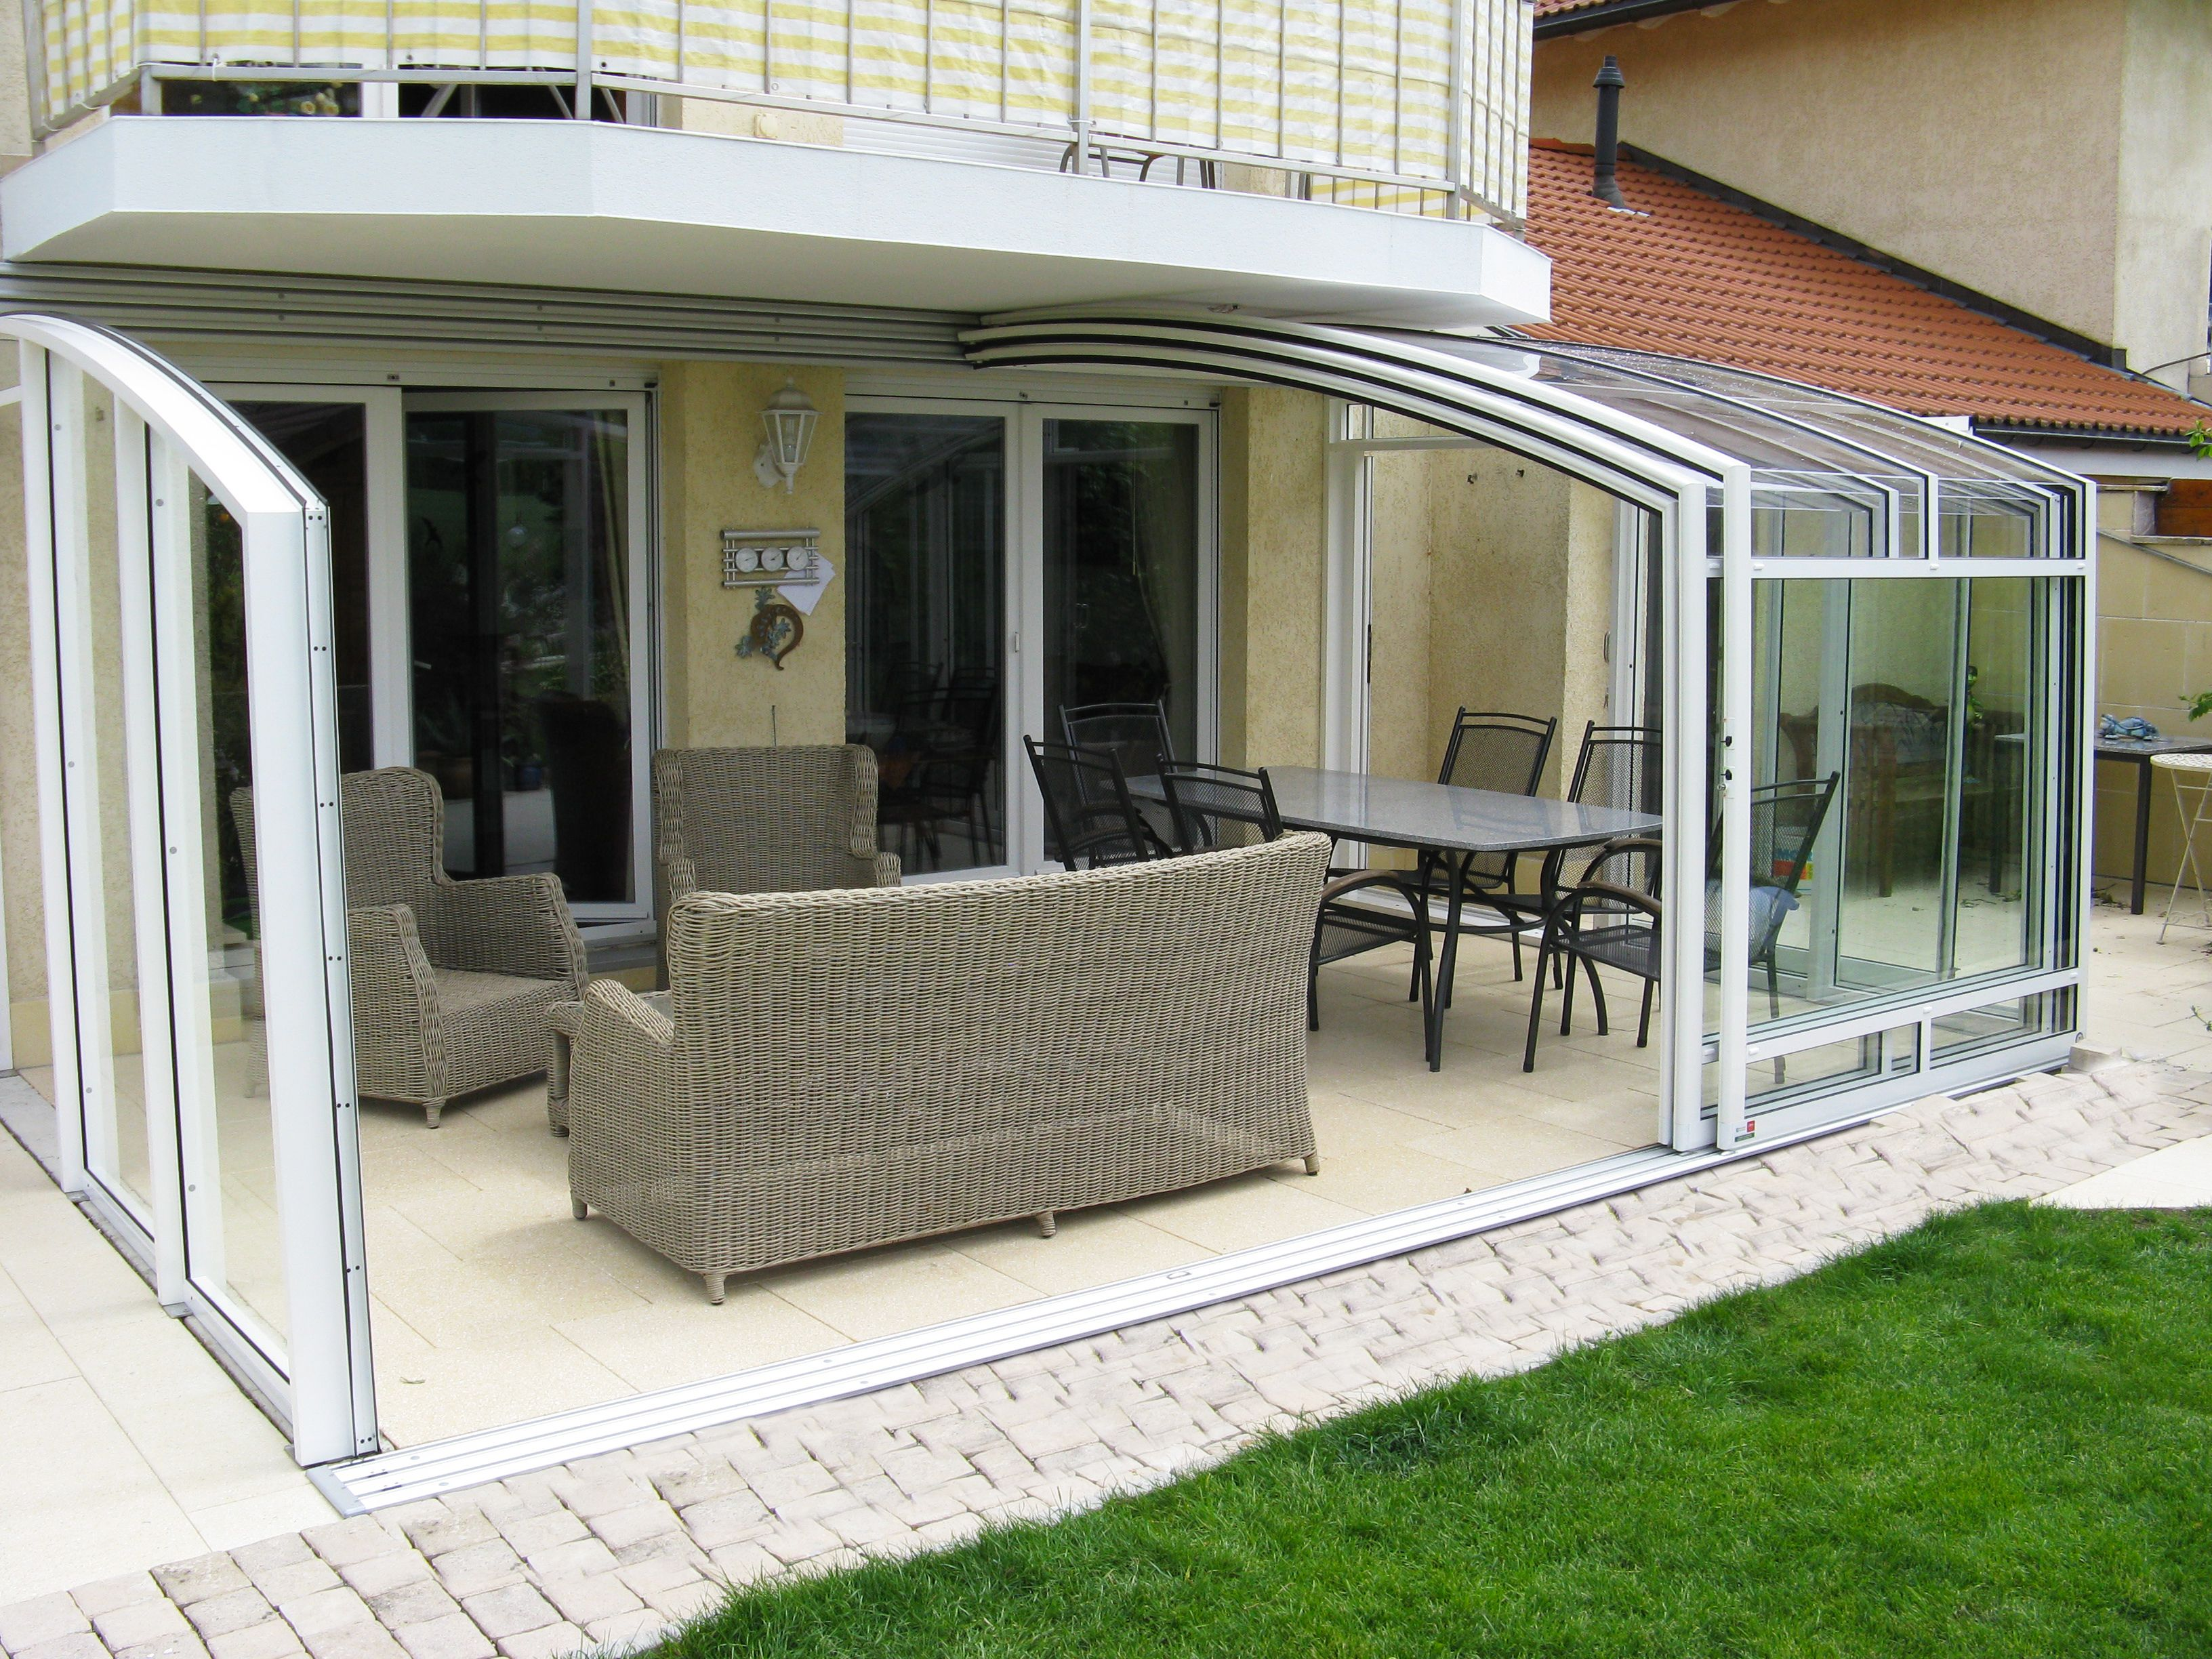 Retractable Patio Enclosure For Your Home Patio Enclosures Patio Pool Enclosures